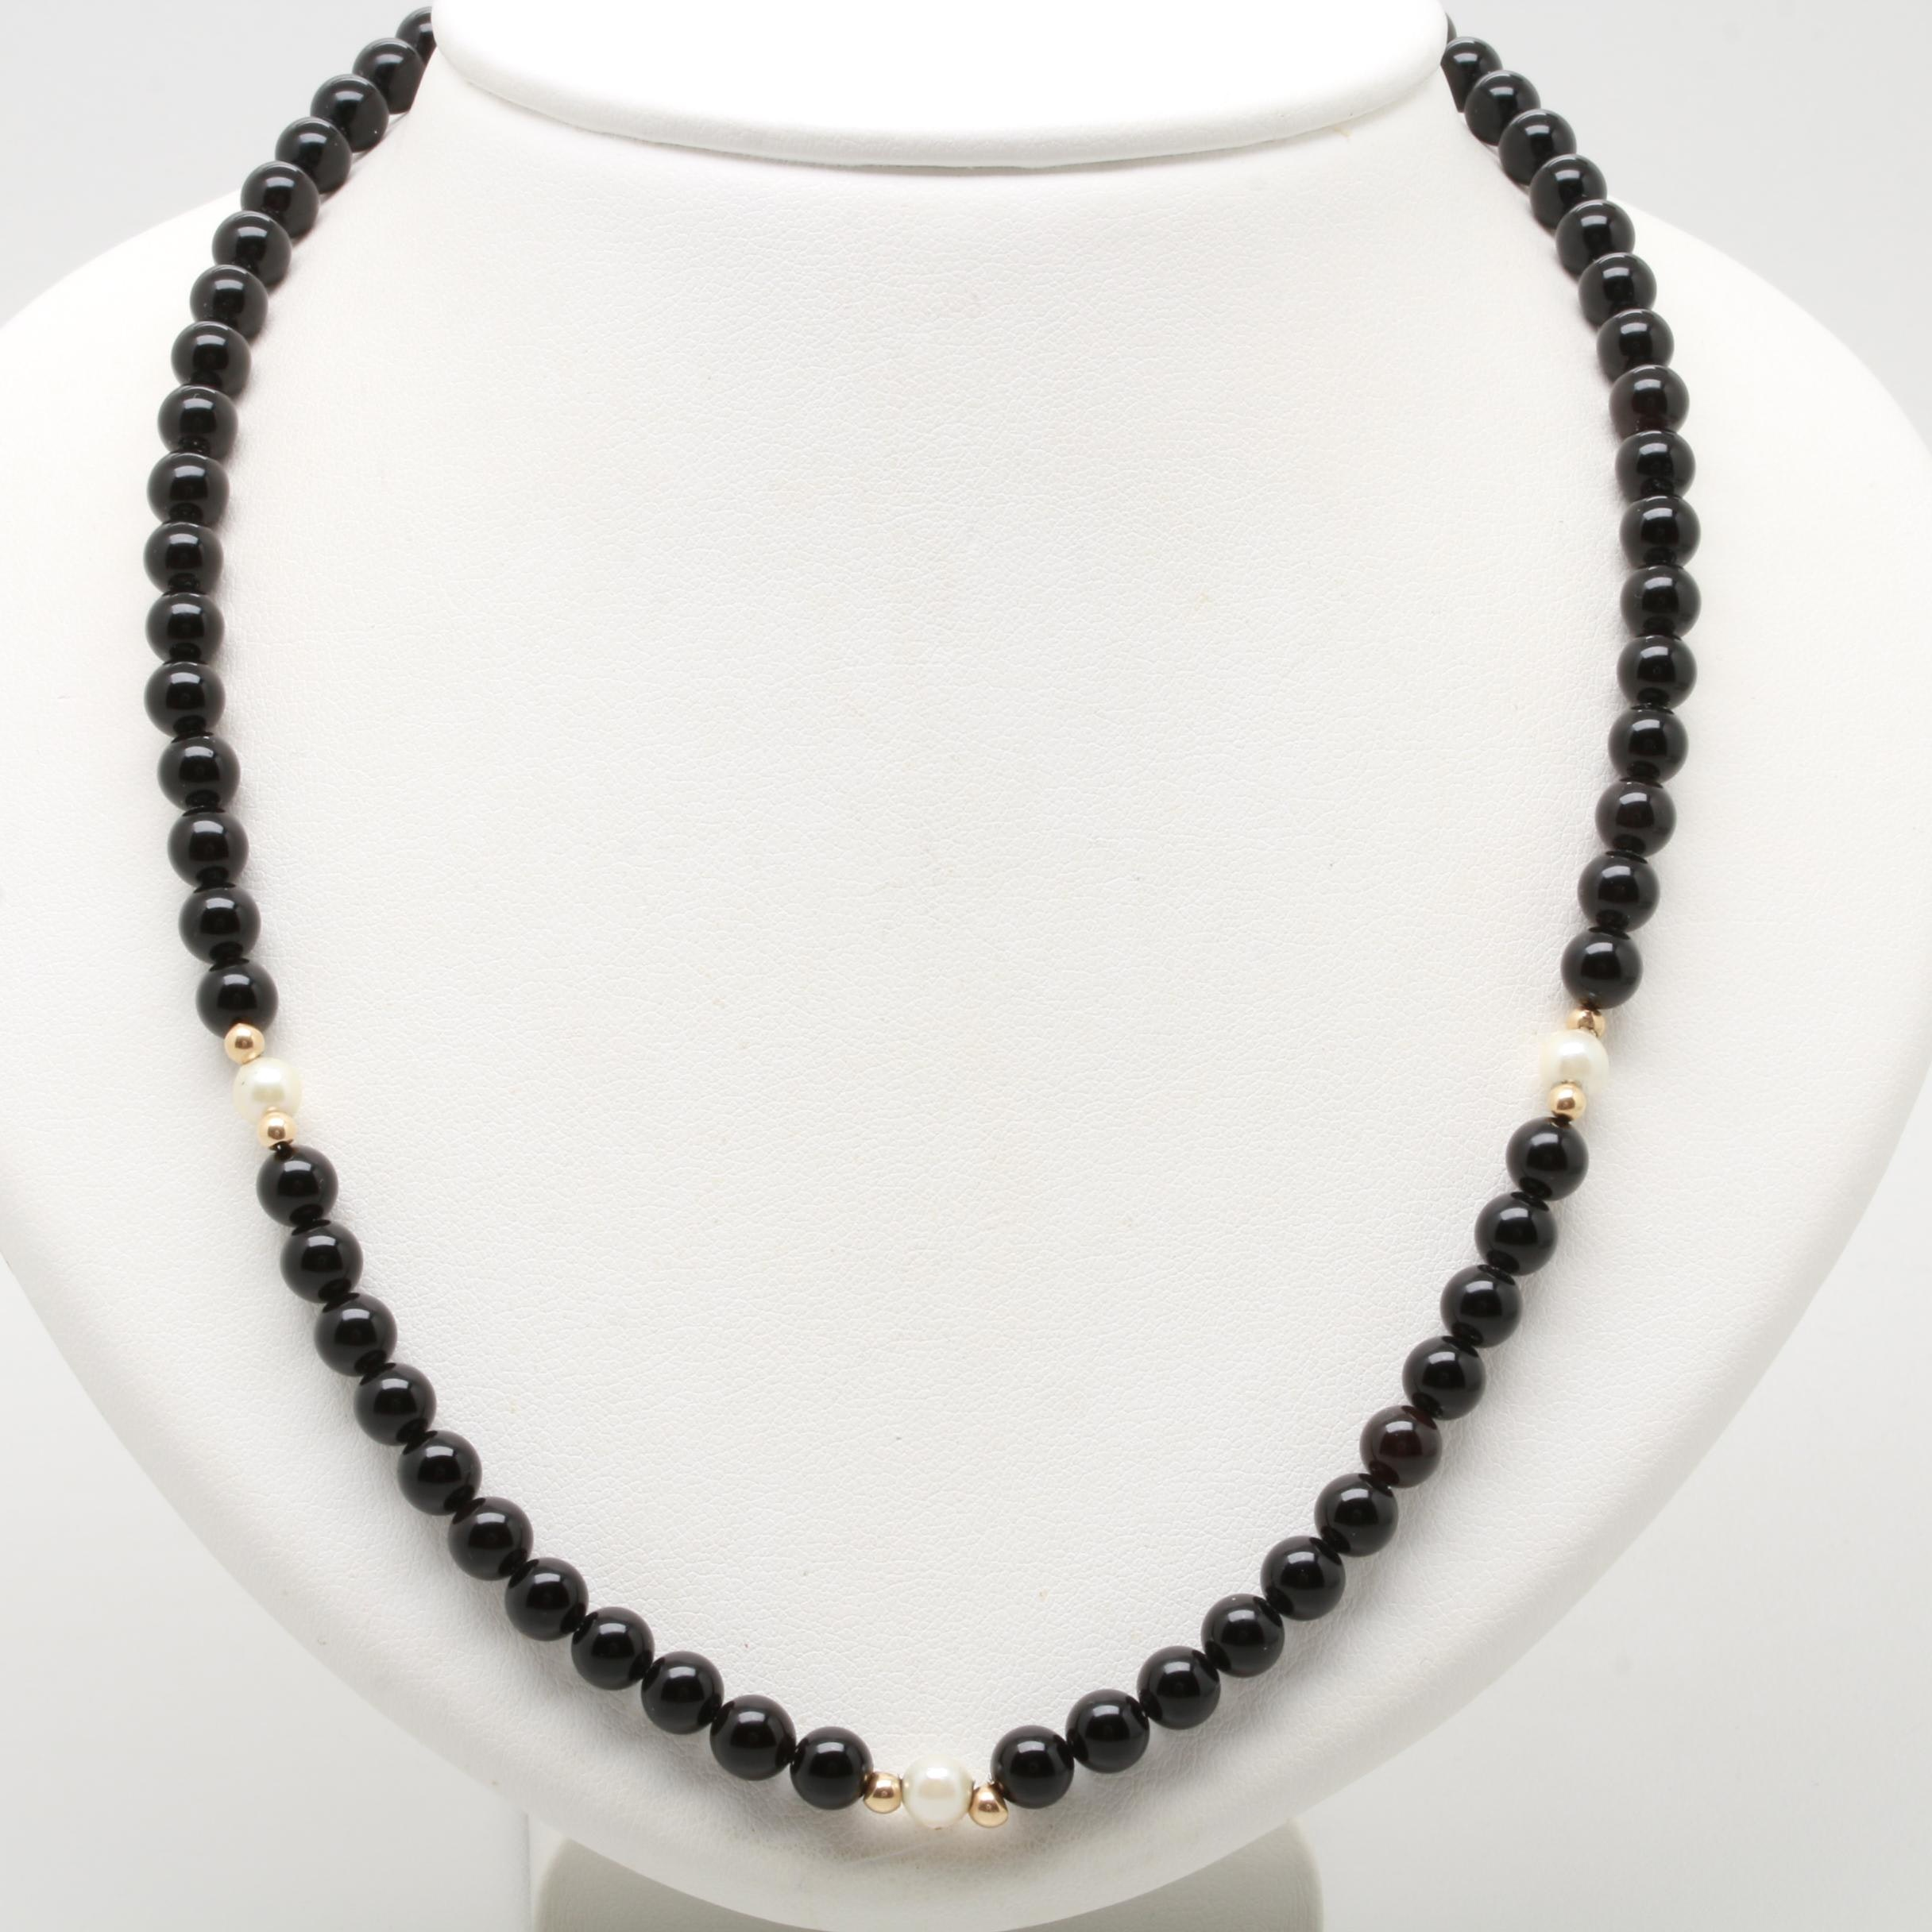 14K Yellow Gold Black Onyx and Cultured Pearl Necklace